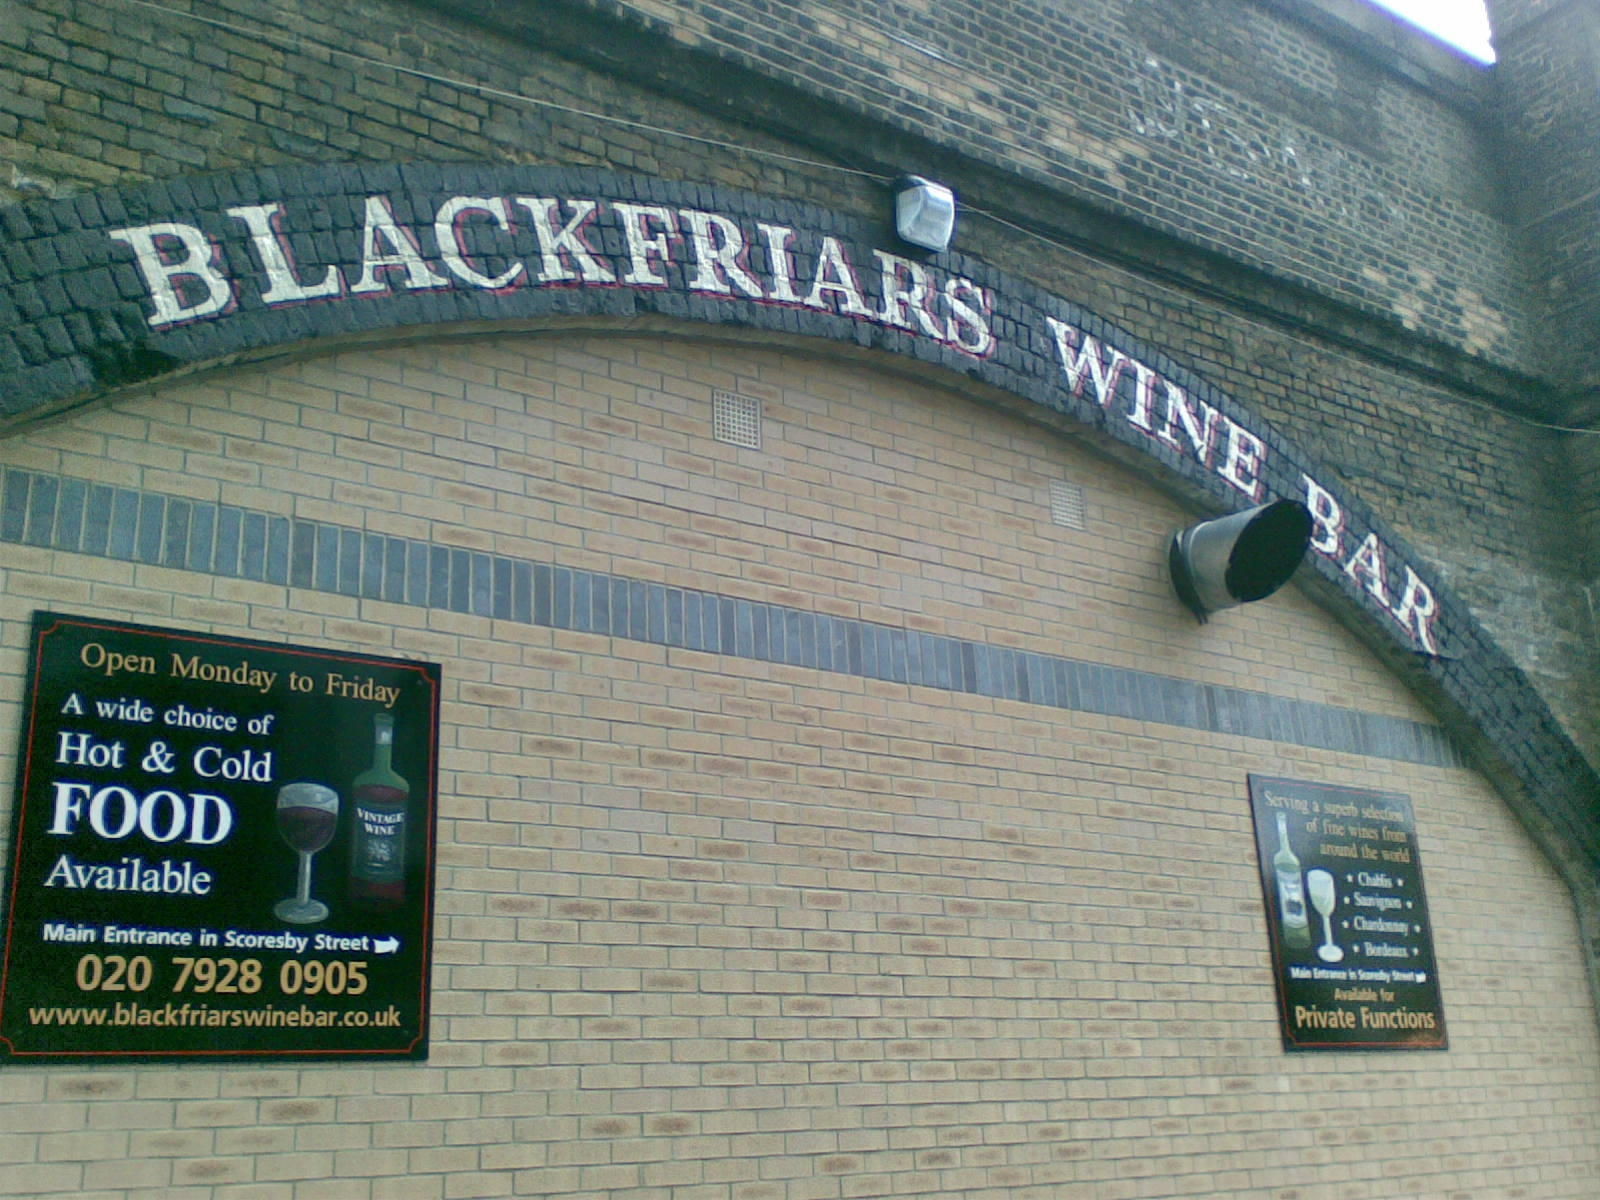 Blackfriars Wine Bar, London 2006